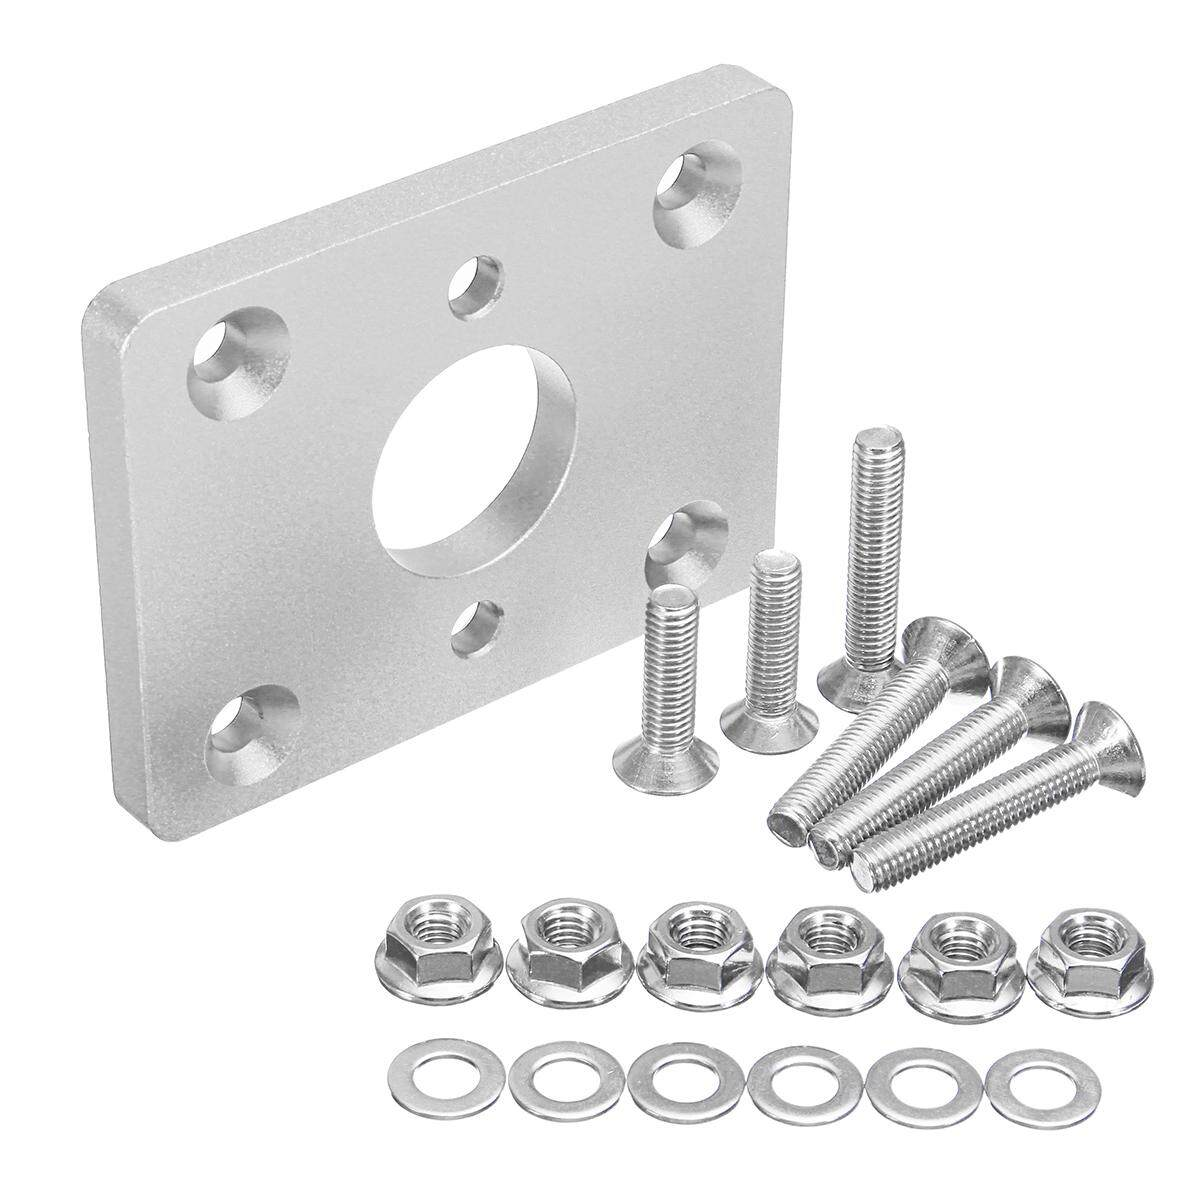 CNC Aluminum Brake Booster Delete Adapter Plate For Honda Civic Aaura  Integra Silver